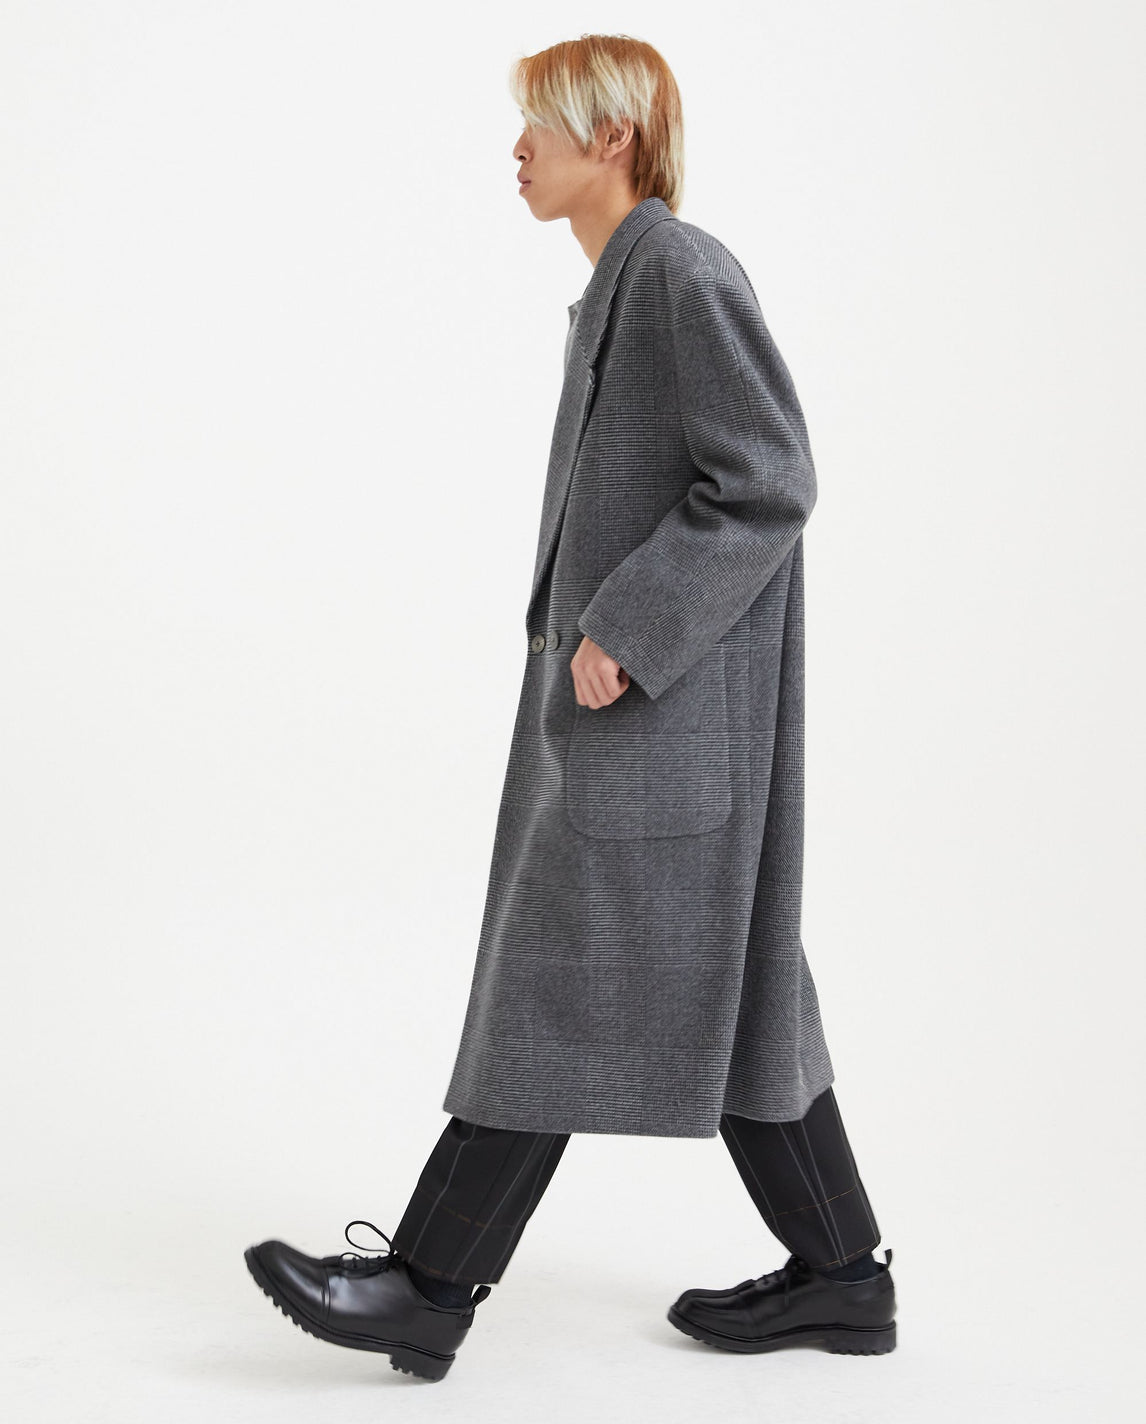 Double Breasted Coat - Grey MENS FEAR OF GOD X ZEGNA